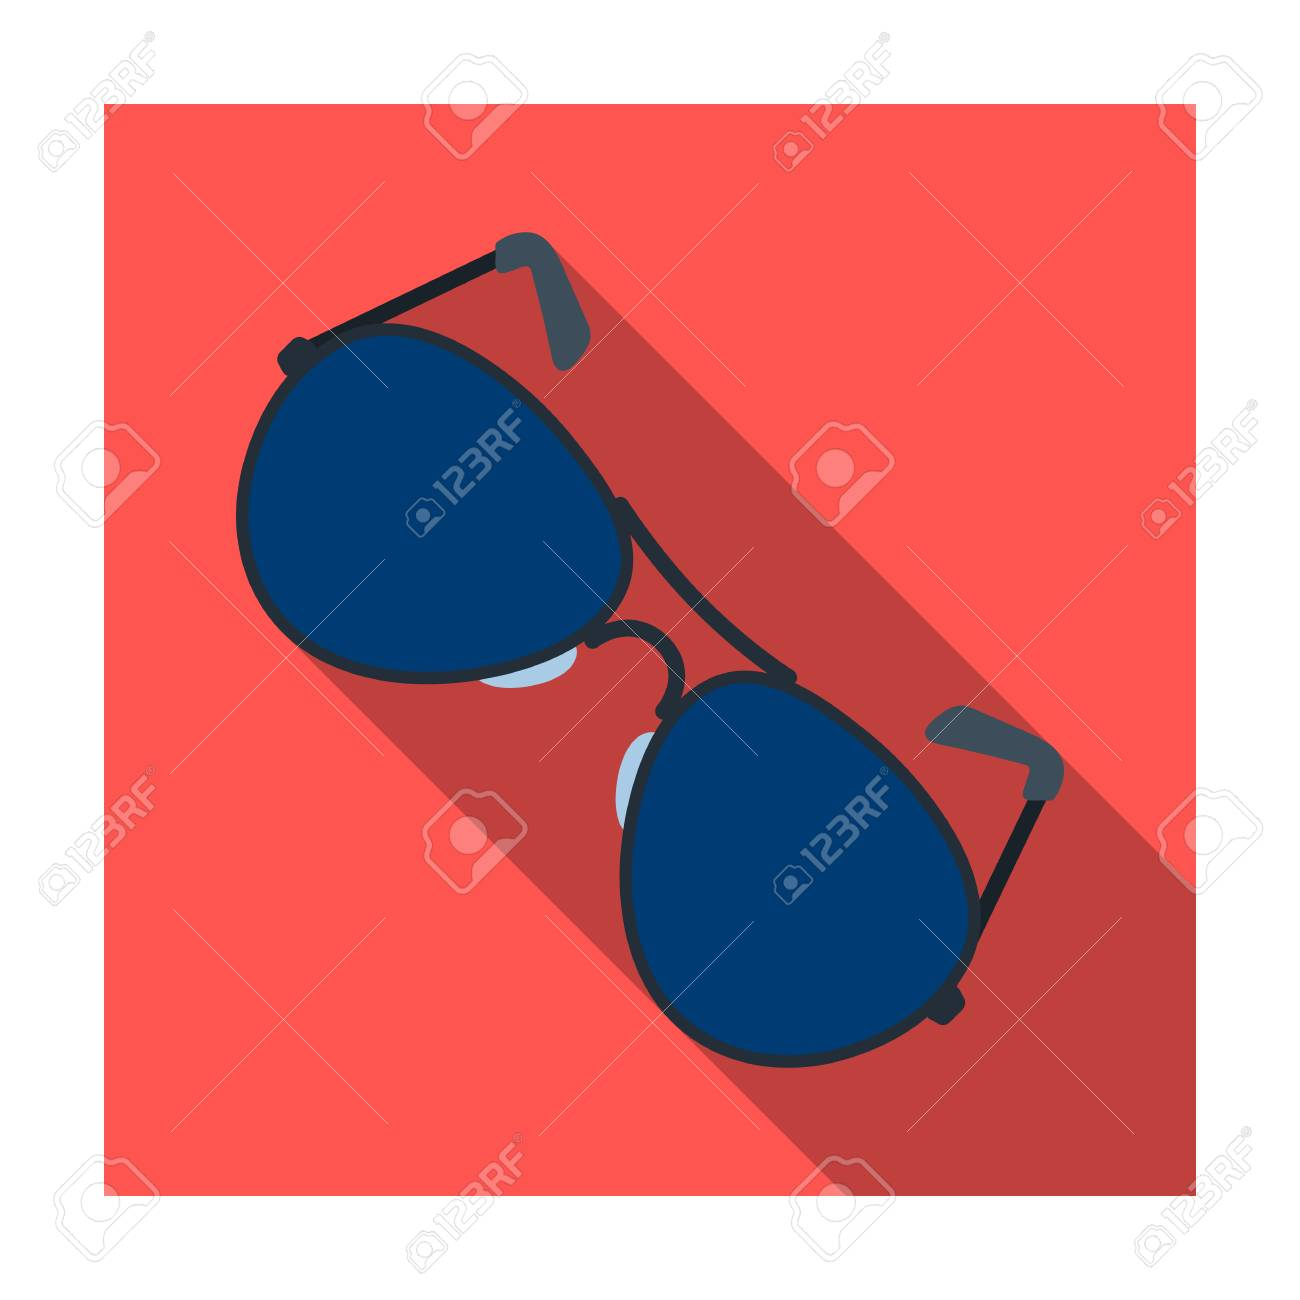 7aec780be7886 Aviator sunglasses icon in flat style isolated on white background. Police  symbol stock vector illustration